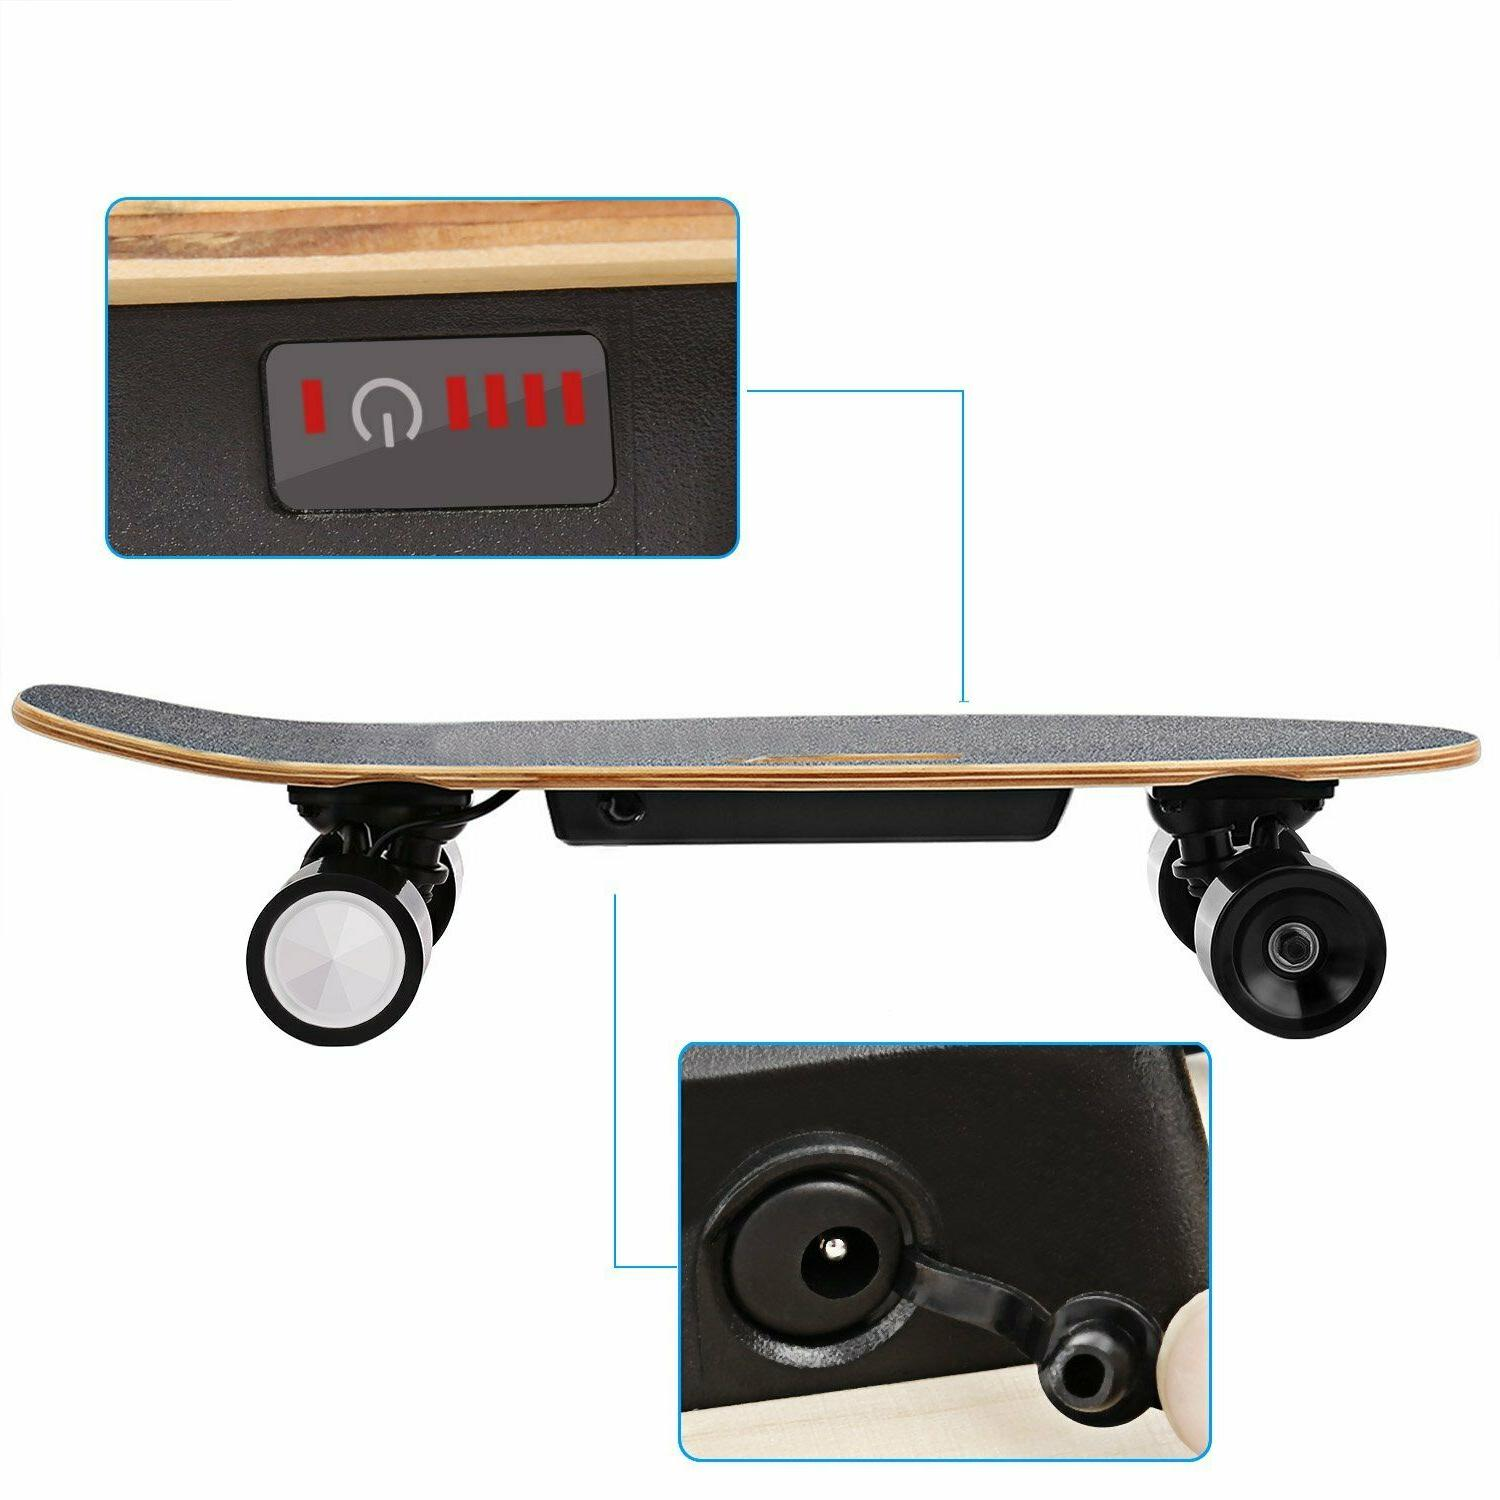 ANCHEER Electric Skateboard Motor Wireless w/Remote Control US